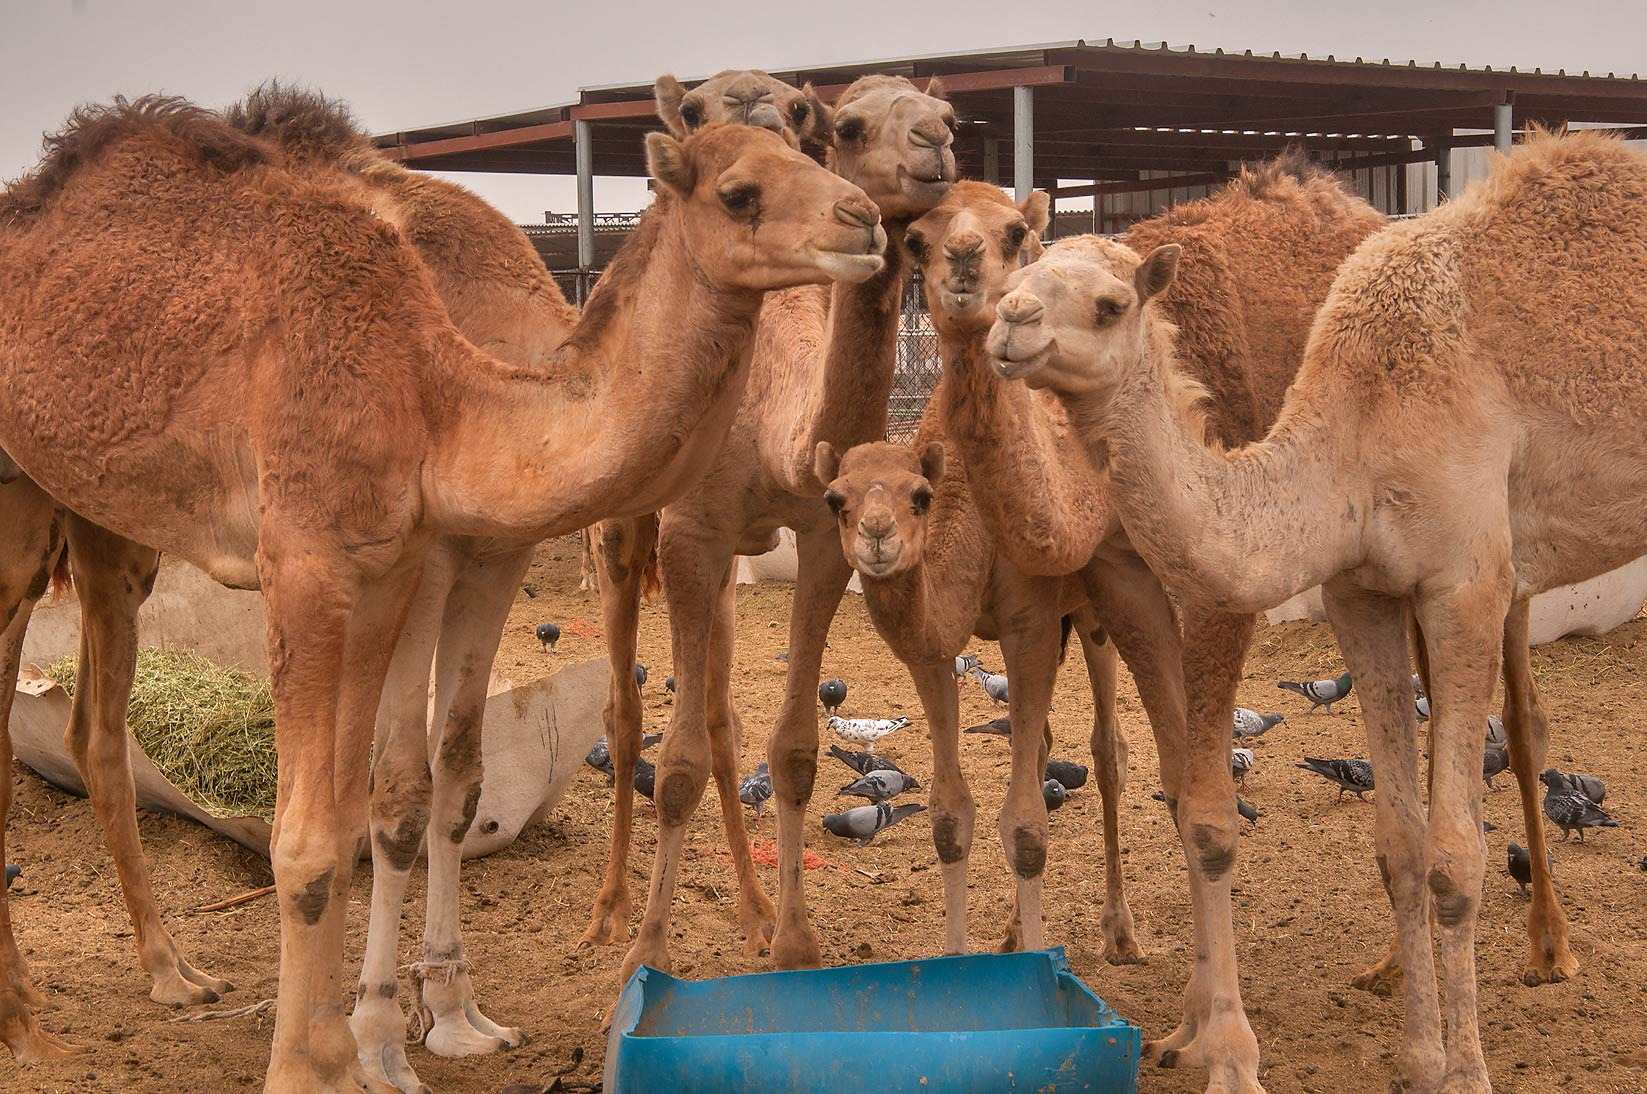 Group of camels at breakfast in livestock market, Abu Hamour area. Doha, Qatar